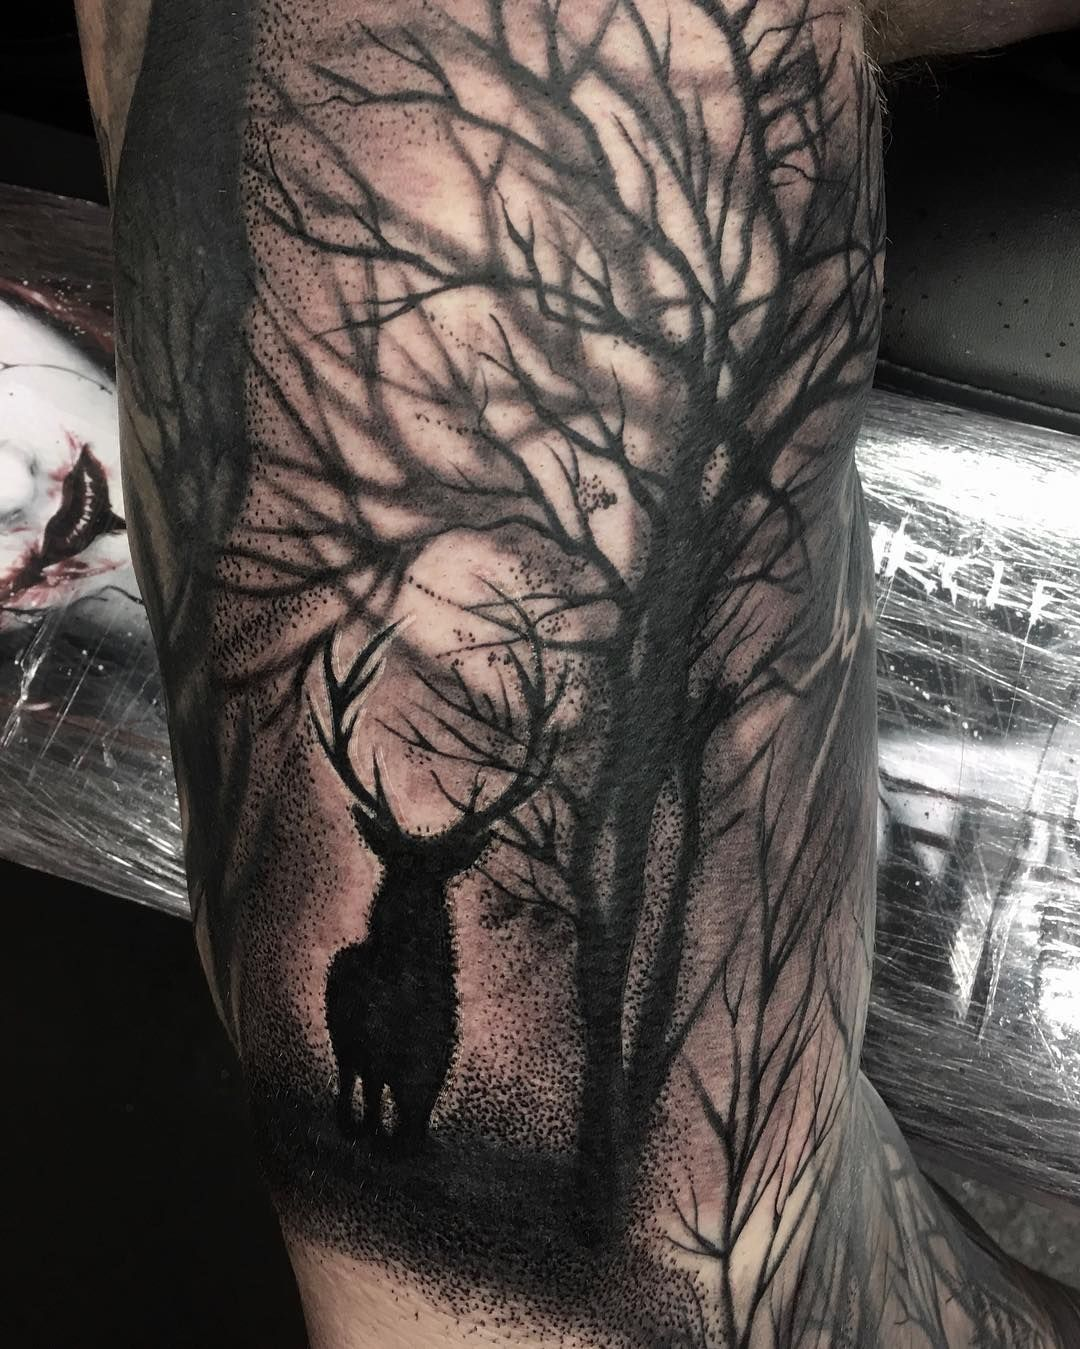 Image of: Sleeve Tattoo 22 Magical Scottish Animal And Nature Tattoos That Youll Love Pinterest 22 Magical Scottish Animal And Nature Tattoos That Youll Love Tat